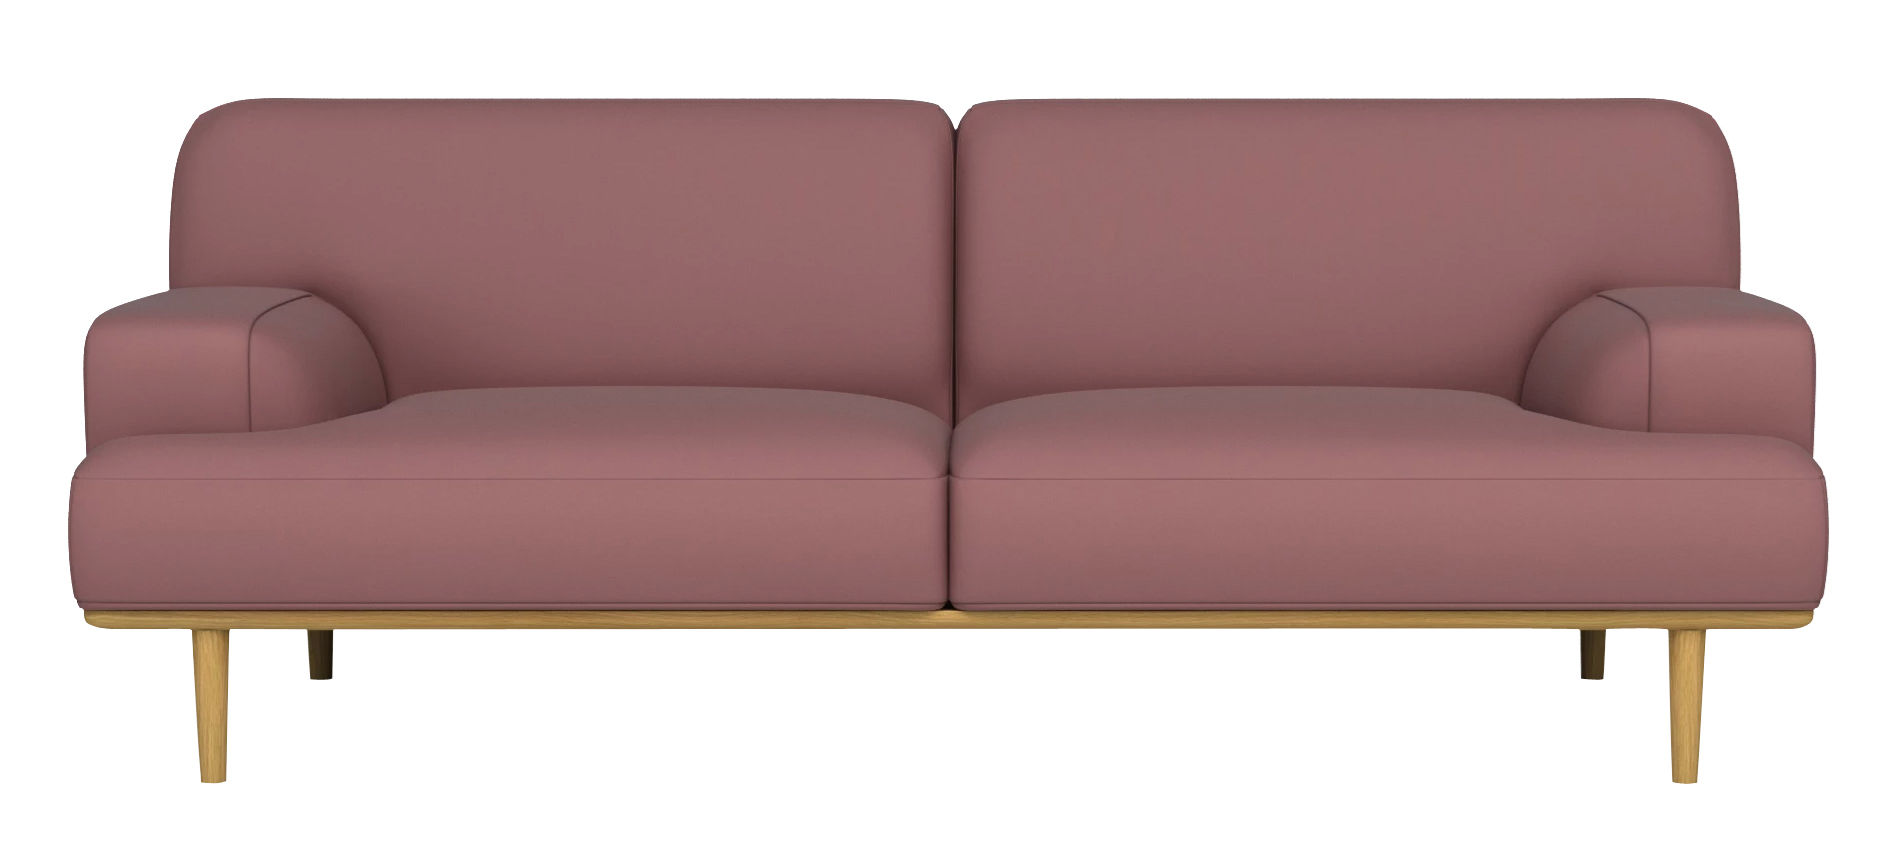 canap droit madison velours 2 places l 204 cm velours rose ch ne bolia made in design. Black Bedroom Furniture Sets. Home Design Ideas